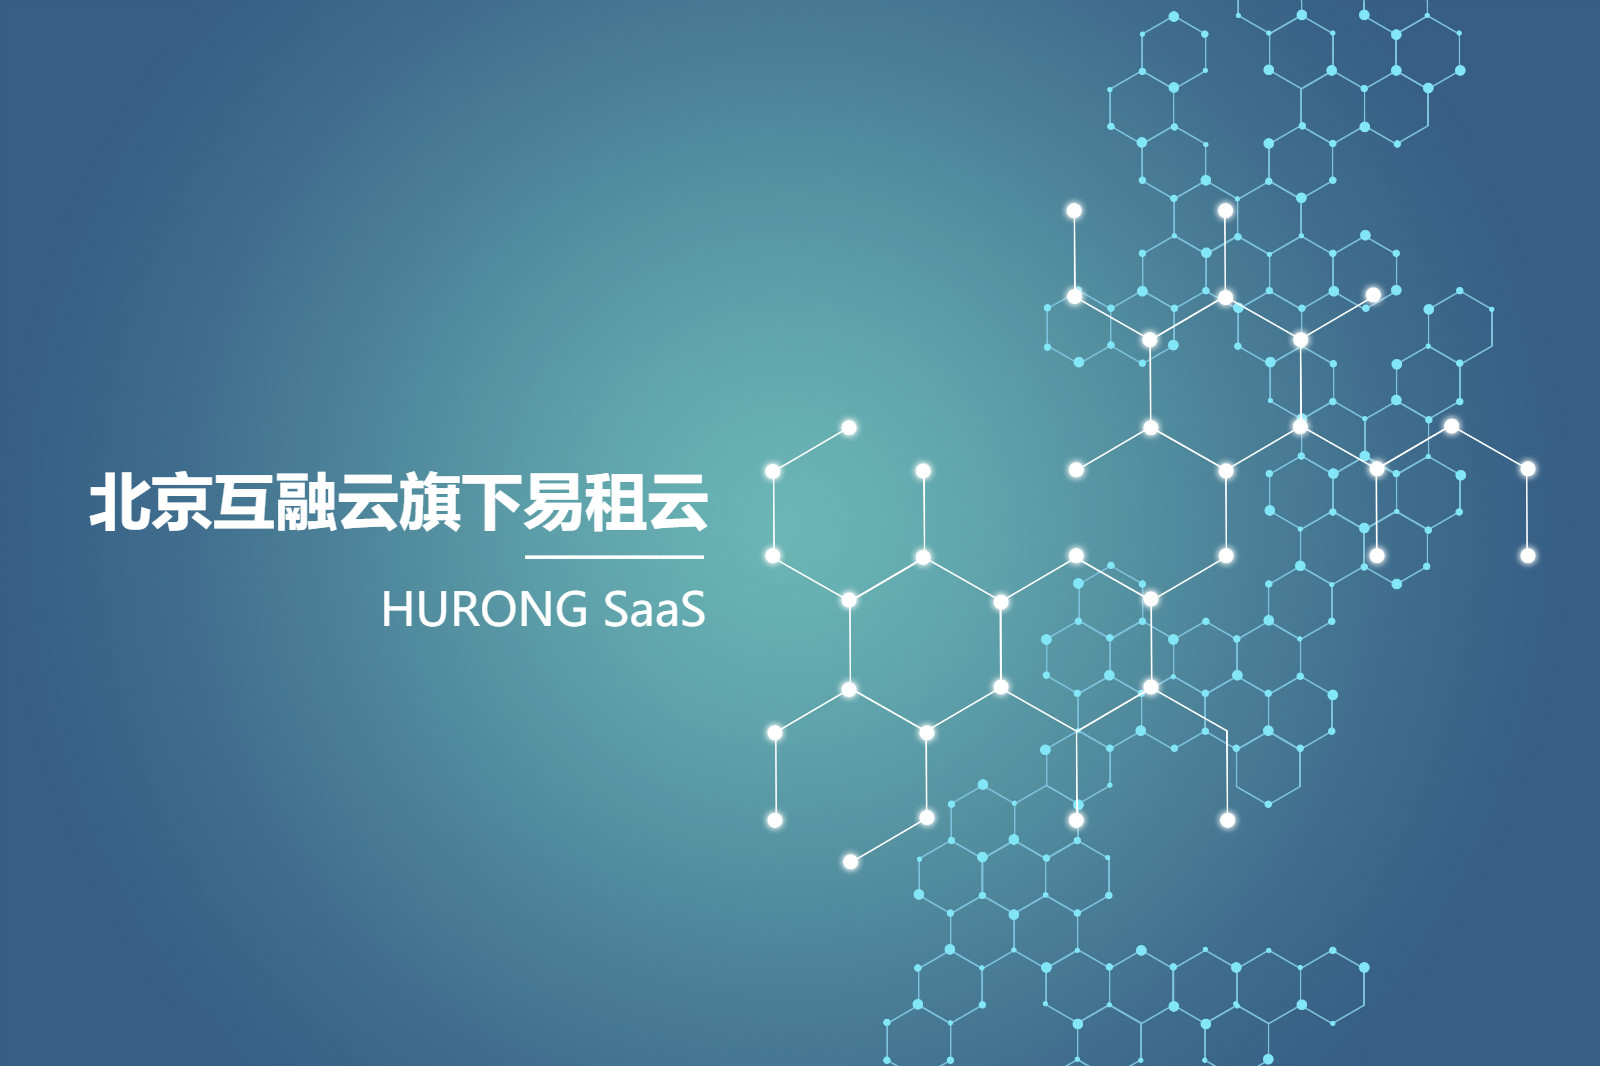 http://www.hurongsoft.com/attachFiles/p2p_article/p2p_article/22554369851356905371325655630573/20181025113608039.jpg